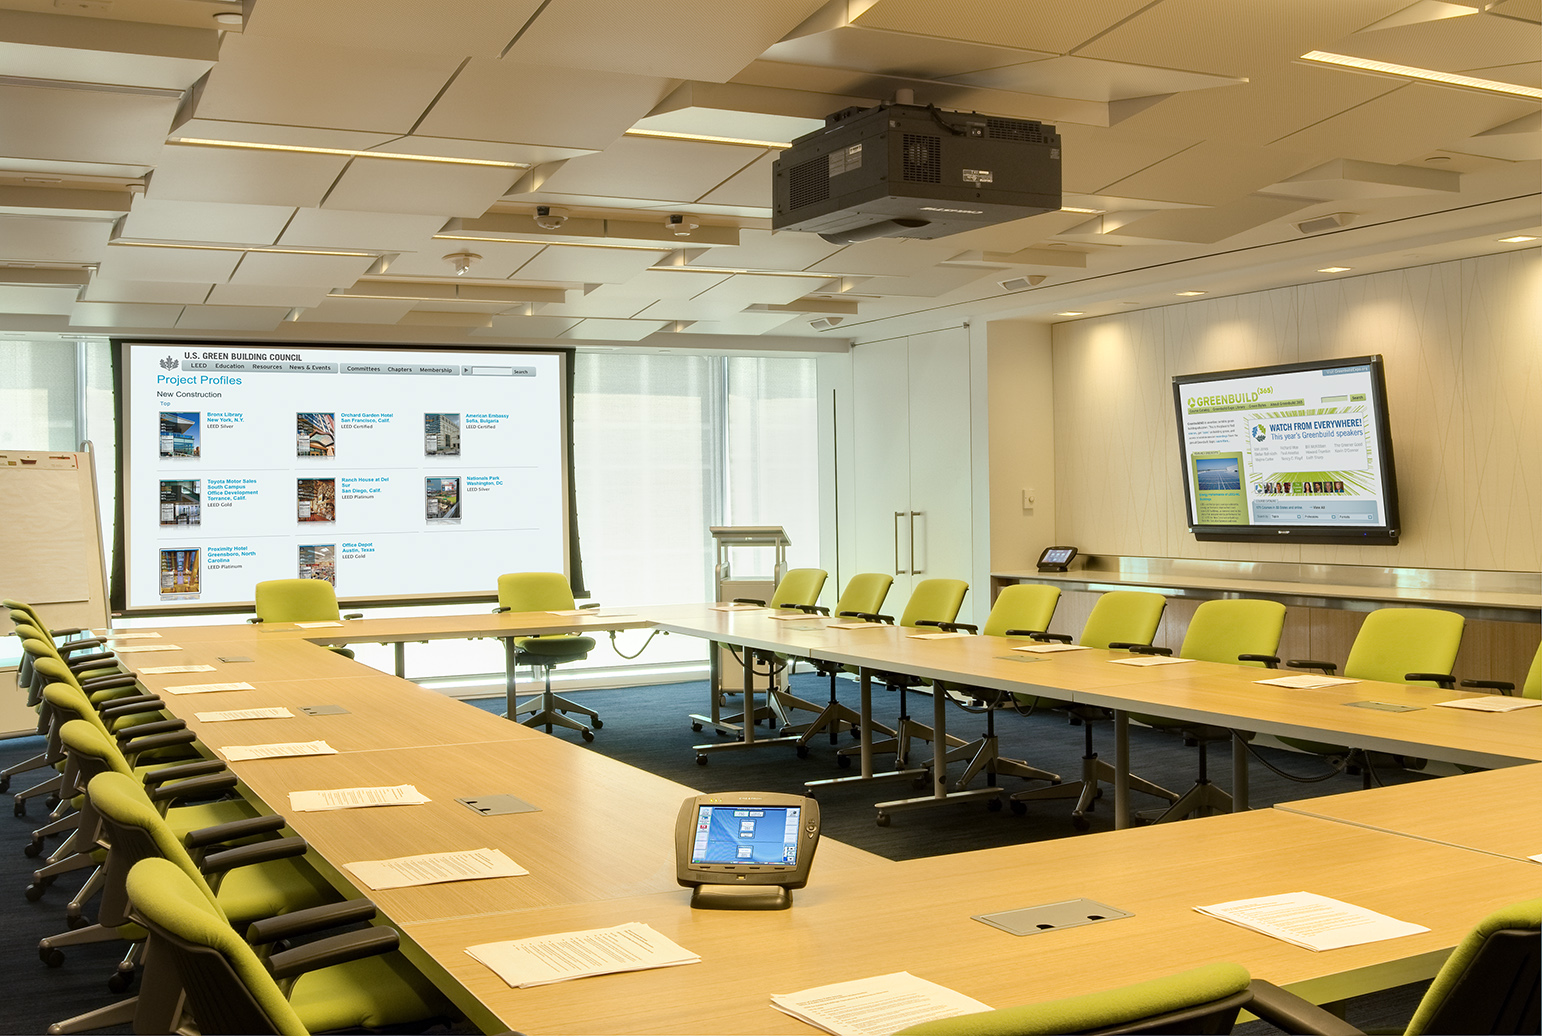 Meeting Room Audio Video and Management Systems